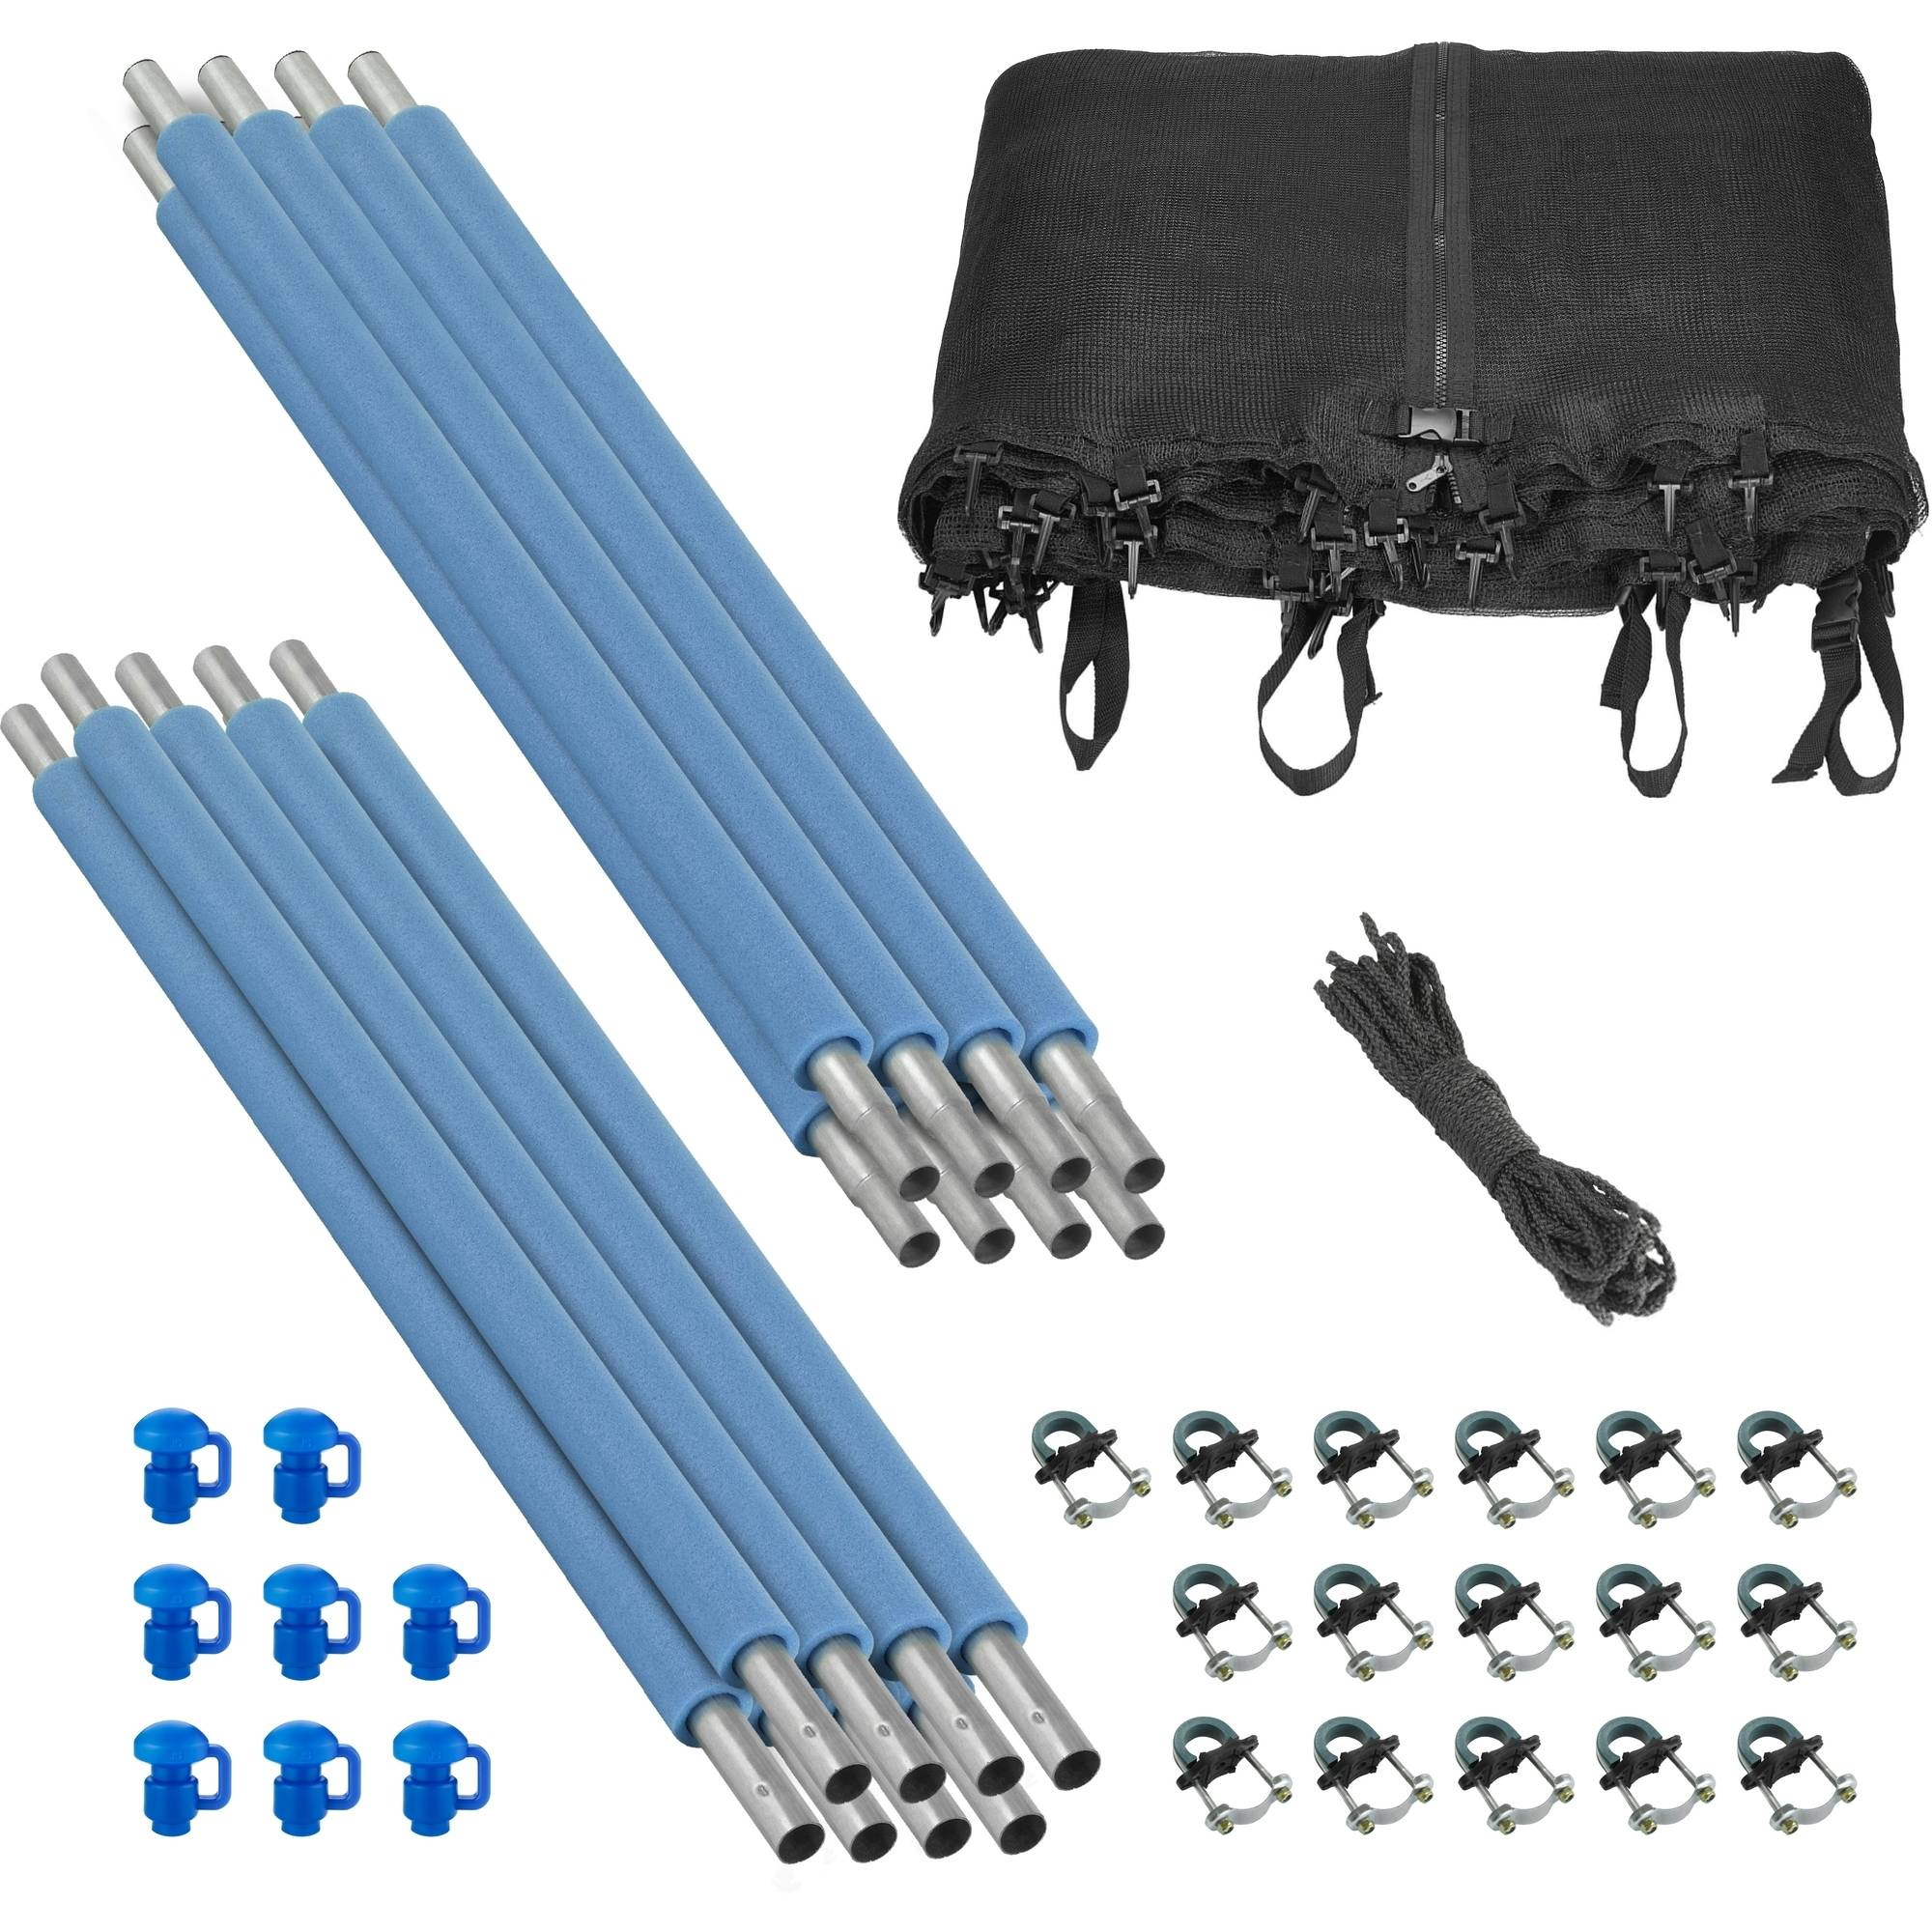 Trampoline Enclosure Set, to fit 15 FT. Round Frames, for 4 or 8 W-Shaped Legs -Set Includes: Net, Poles & Hardware Only